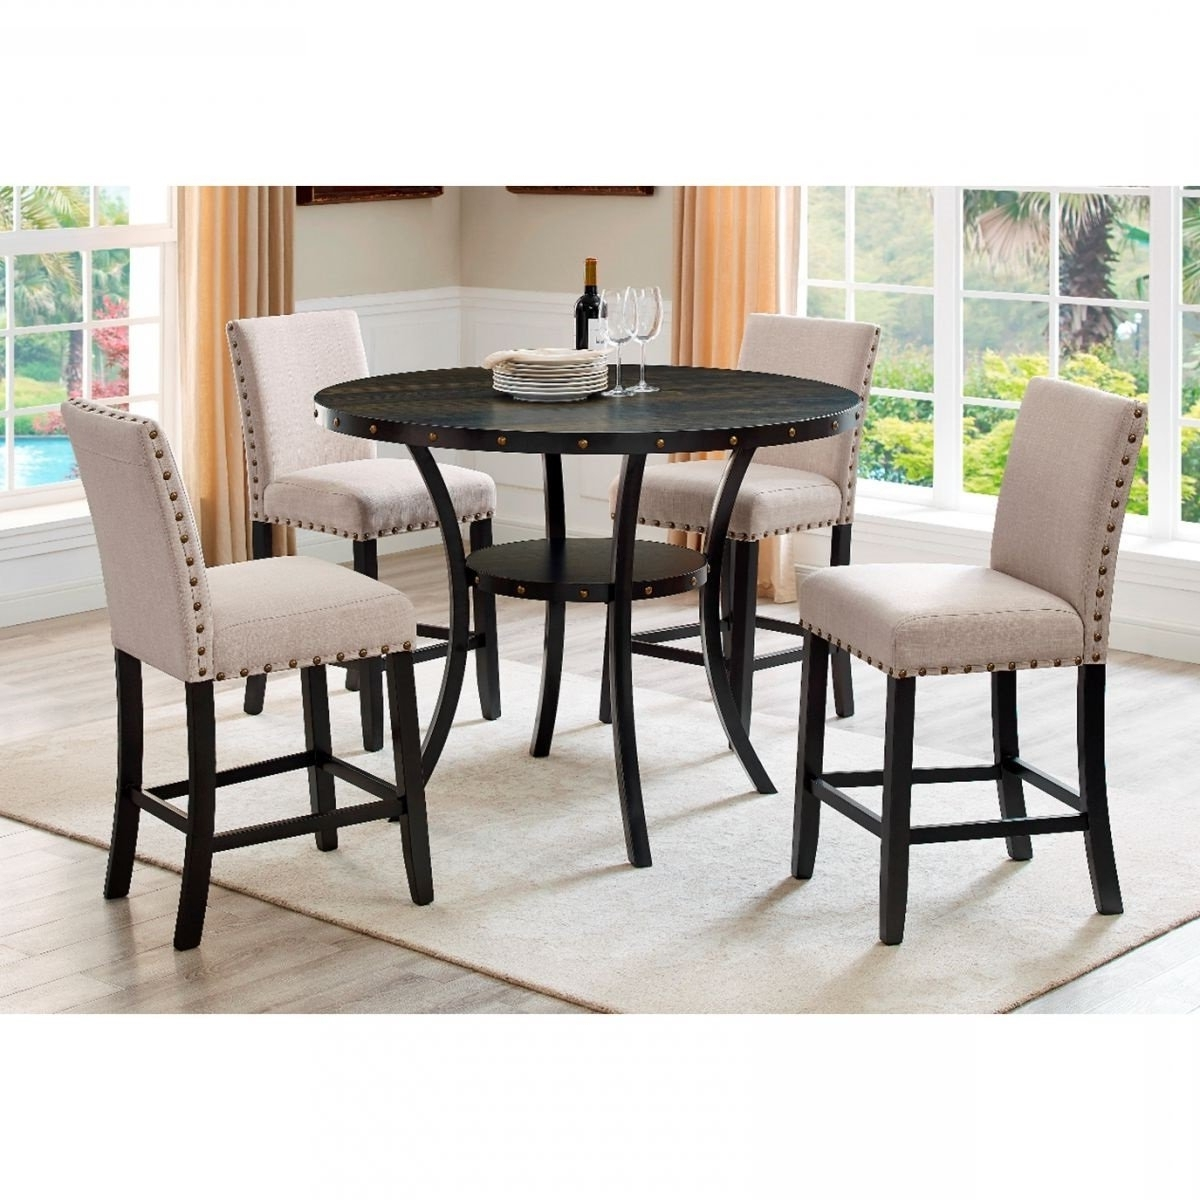 Preferred Madison 5 Pc Counter Height Dining Room (View 18 of 25)